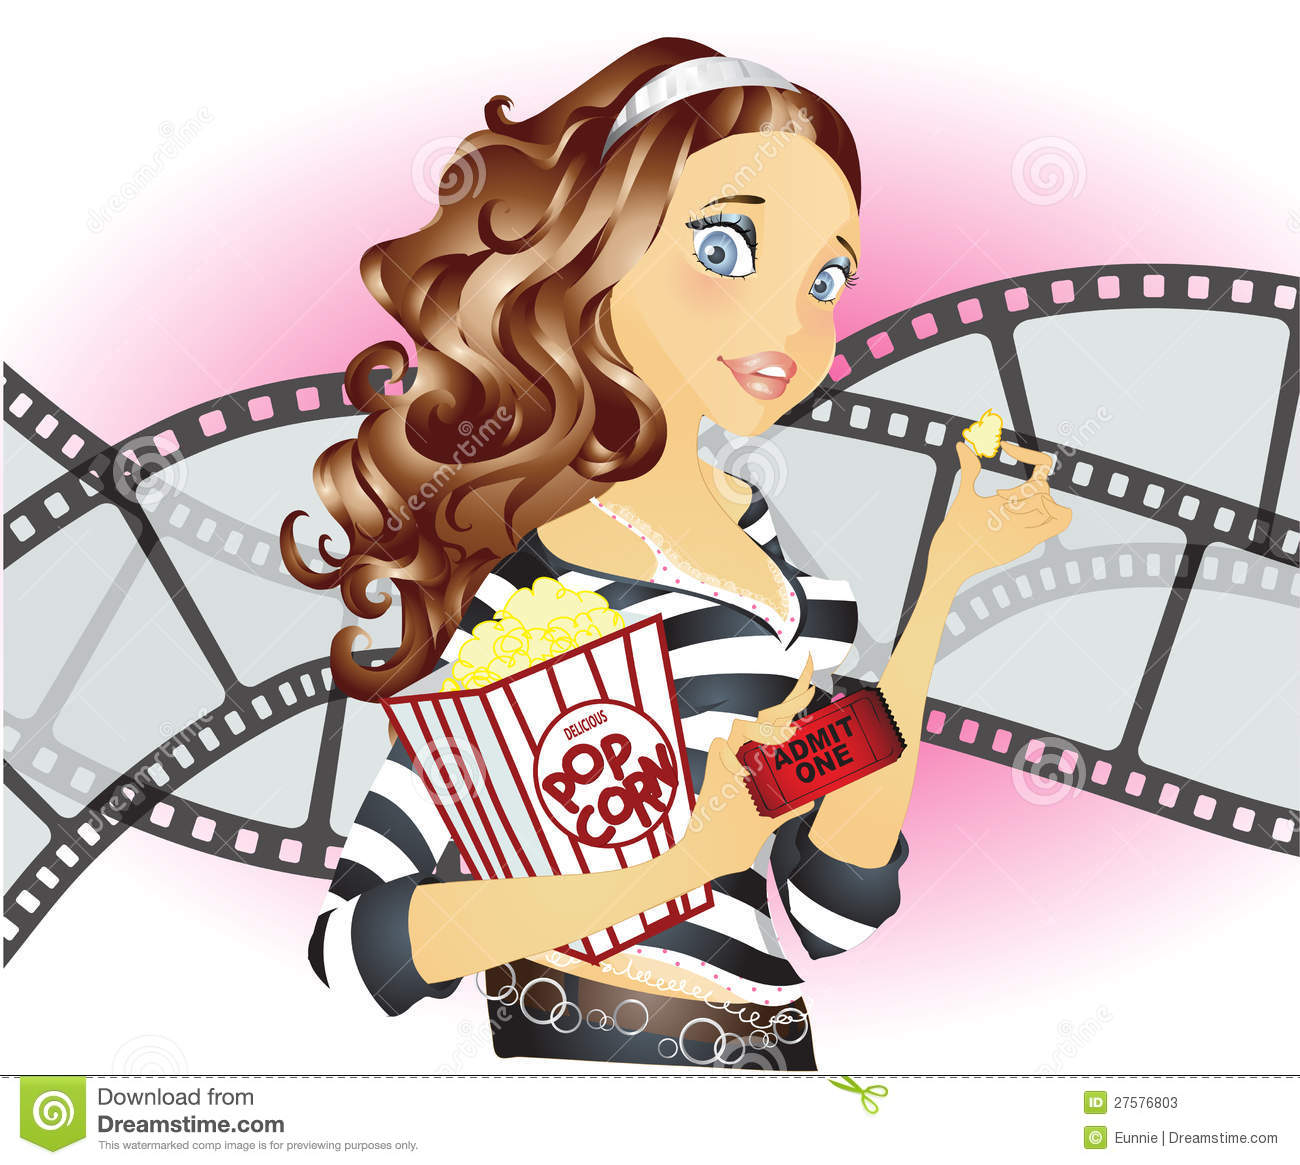 Worksheet Going To The Movies going to the movies clipart kid stock photos image 27576803